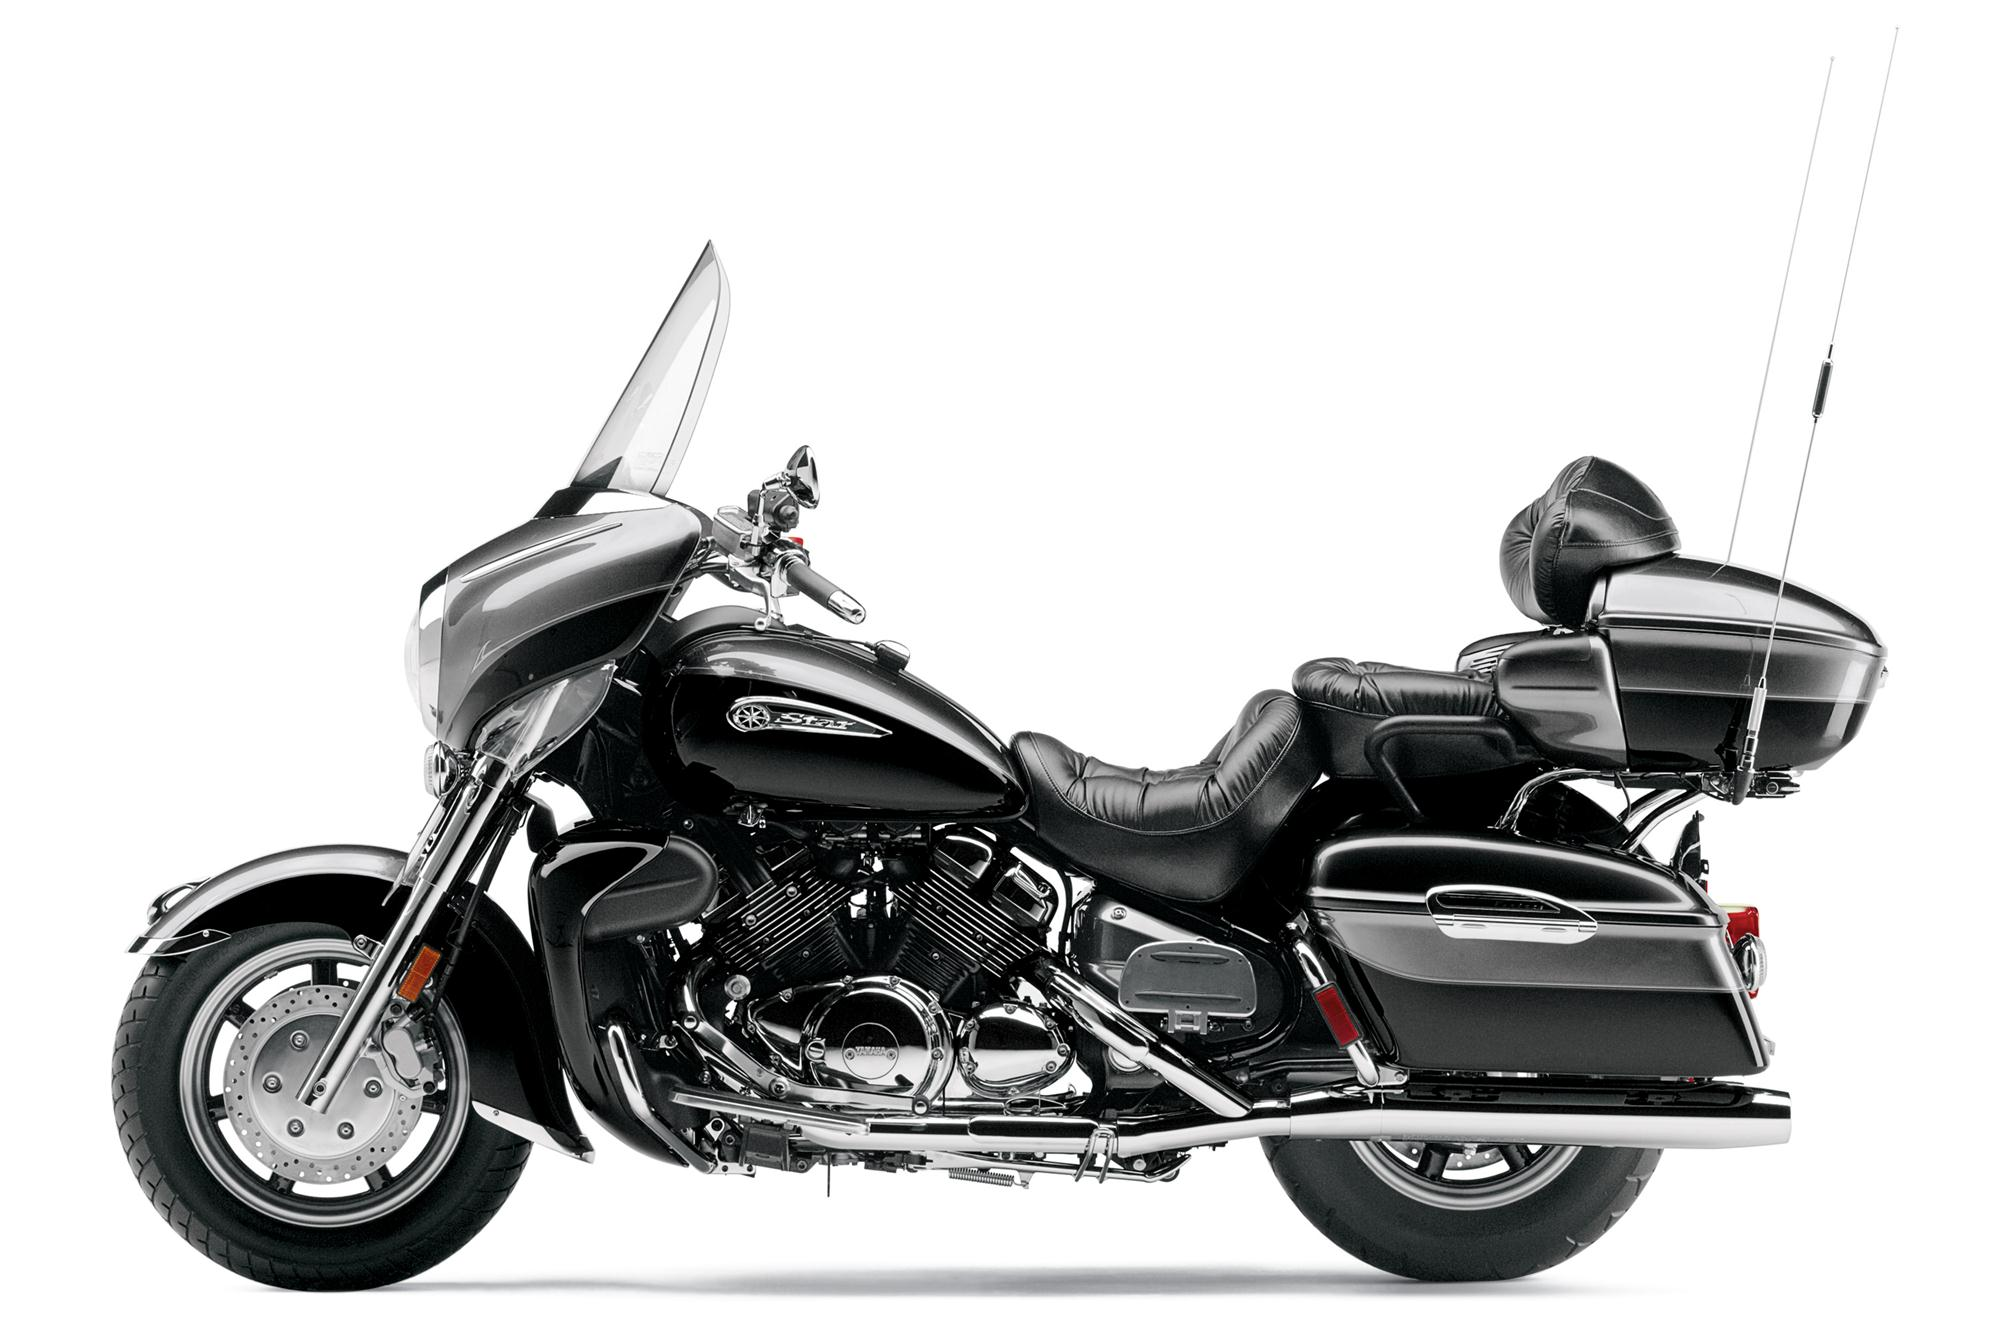 yamaha royal star venture review and photos rh roadsmile com